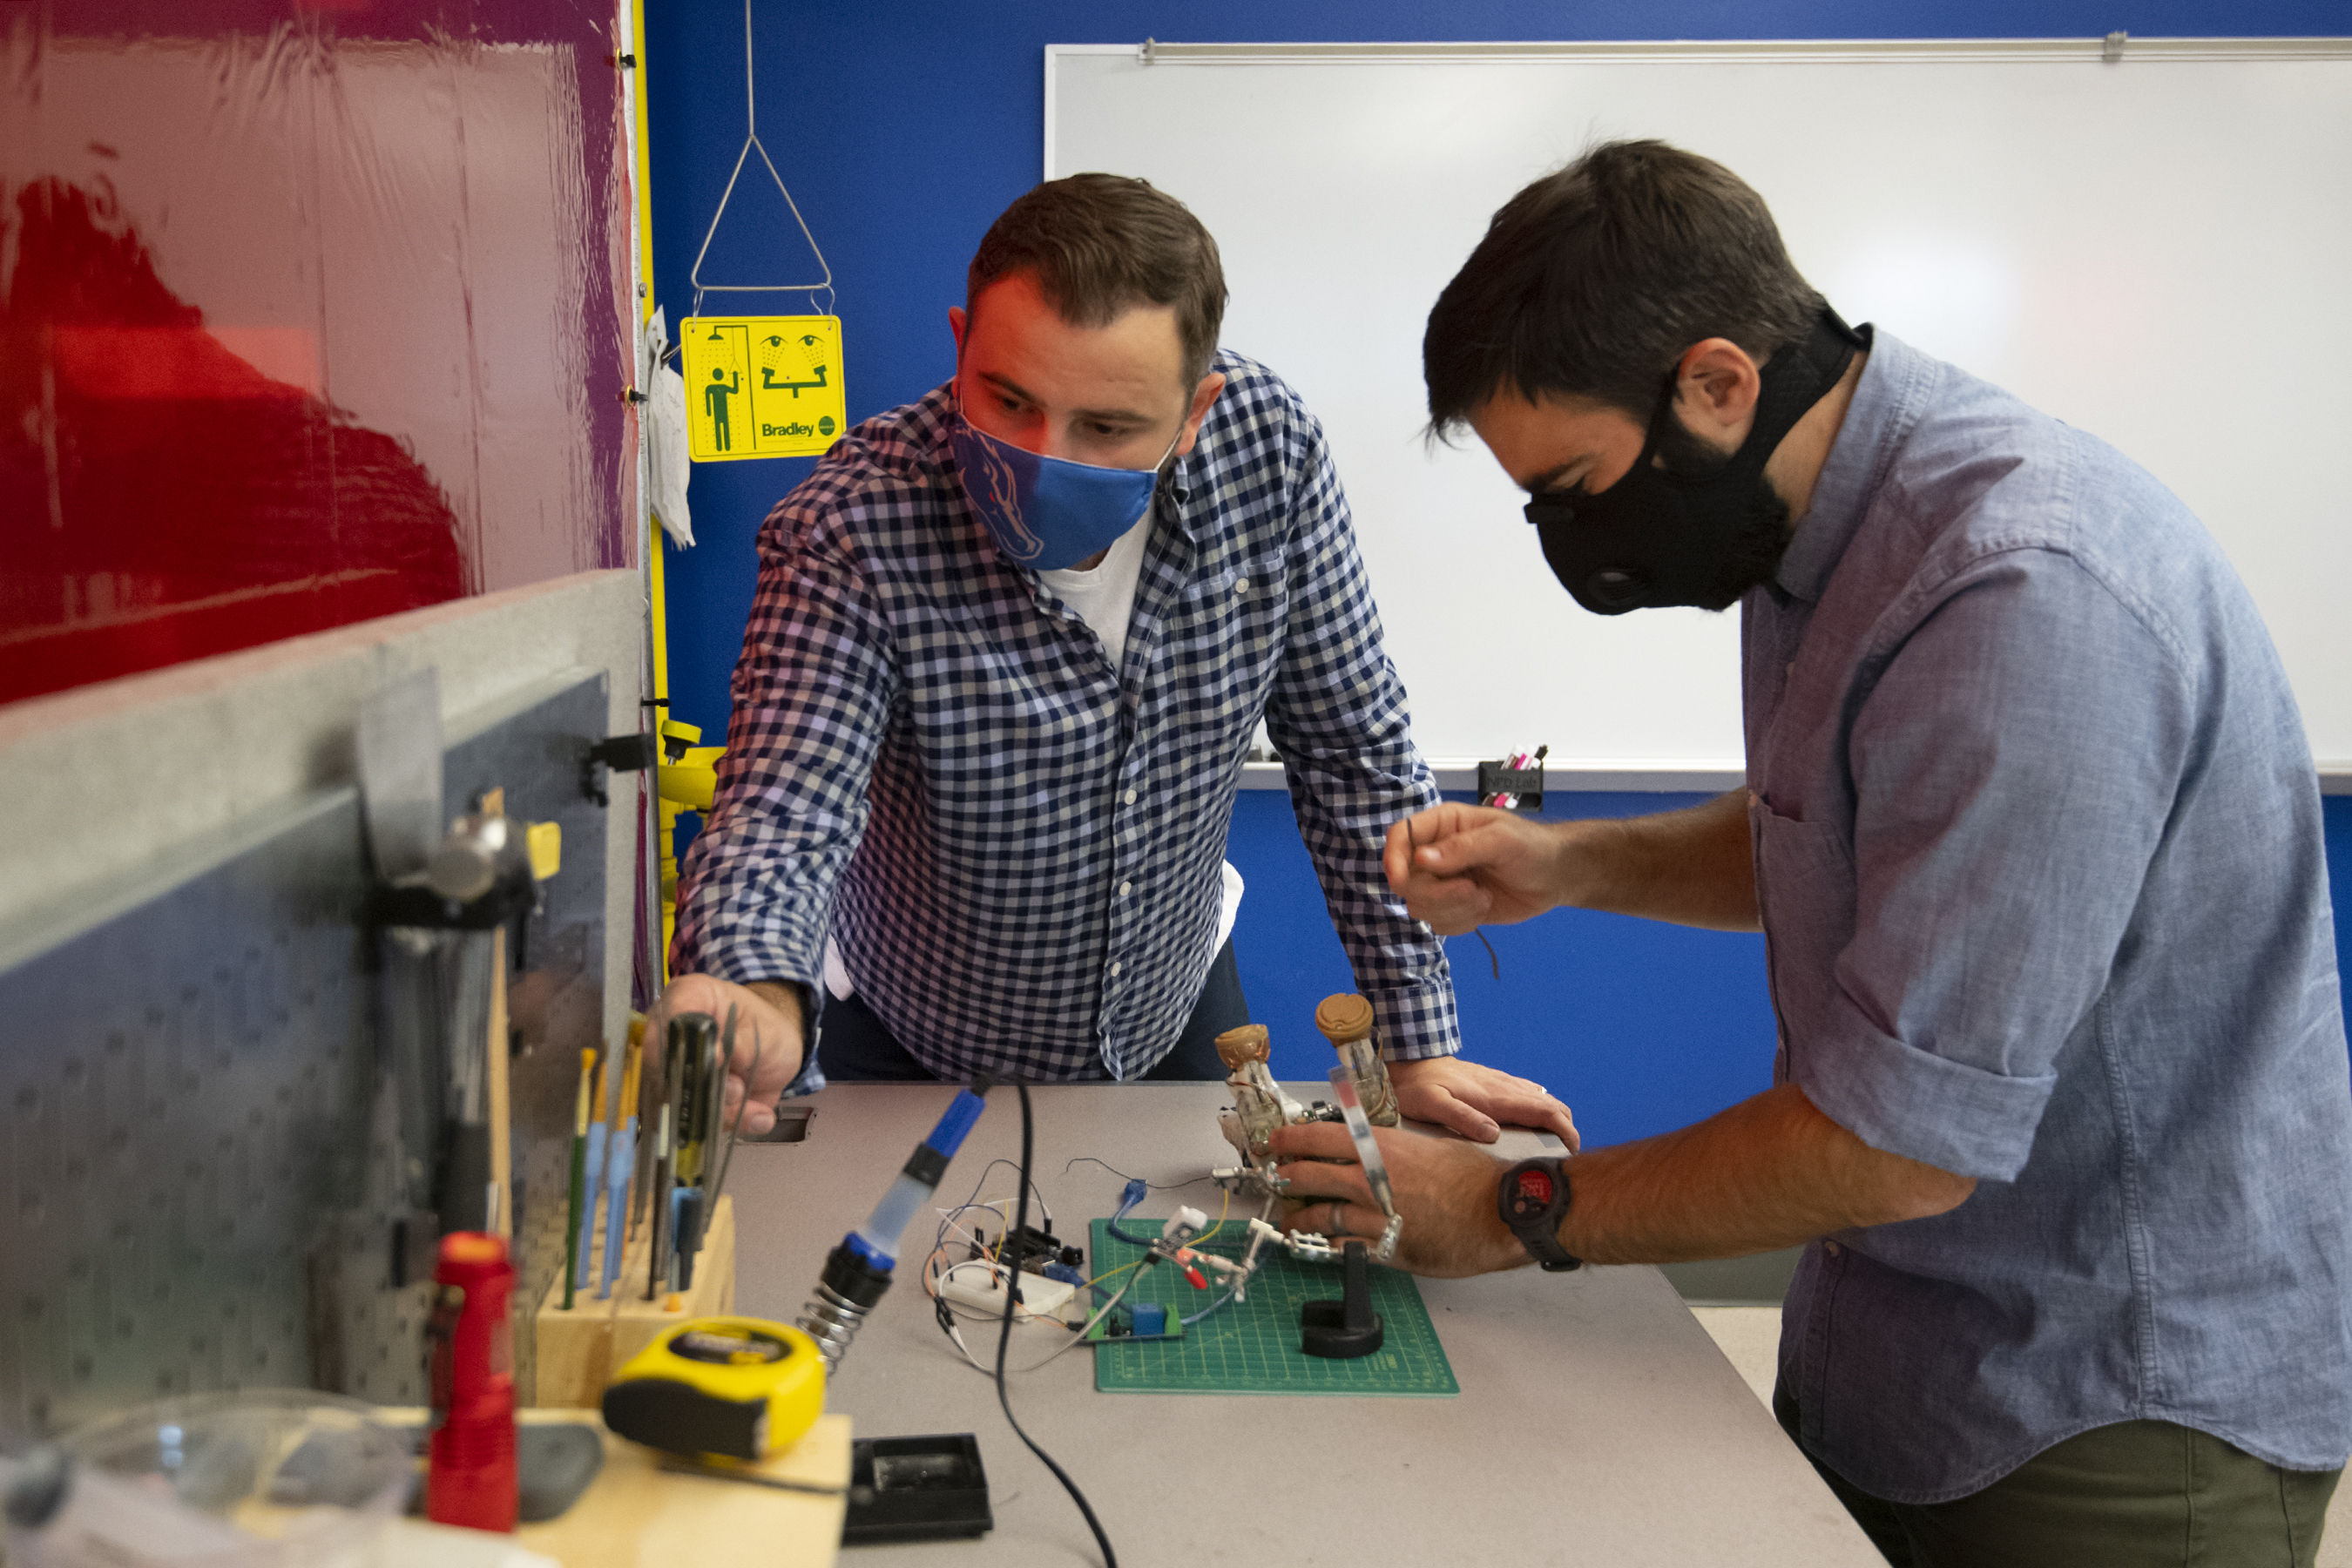 Lab specialist and student design engineer working on a project